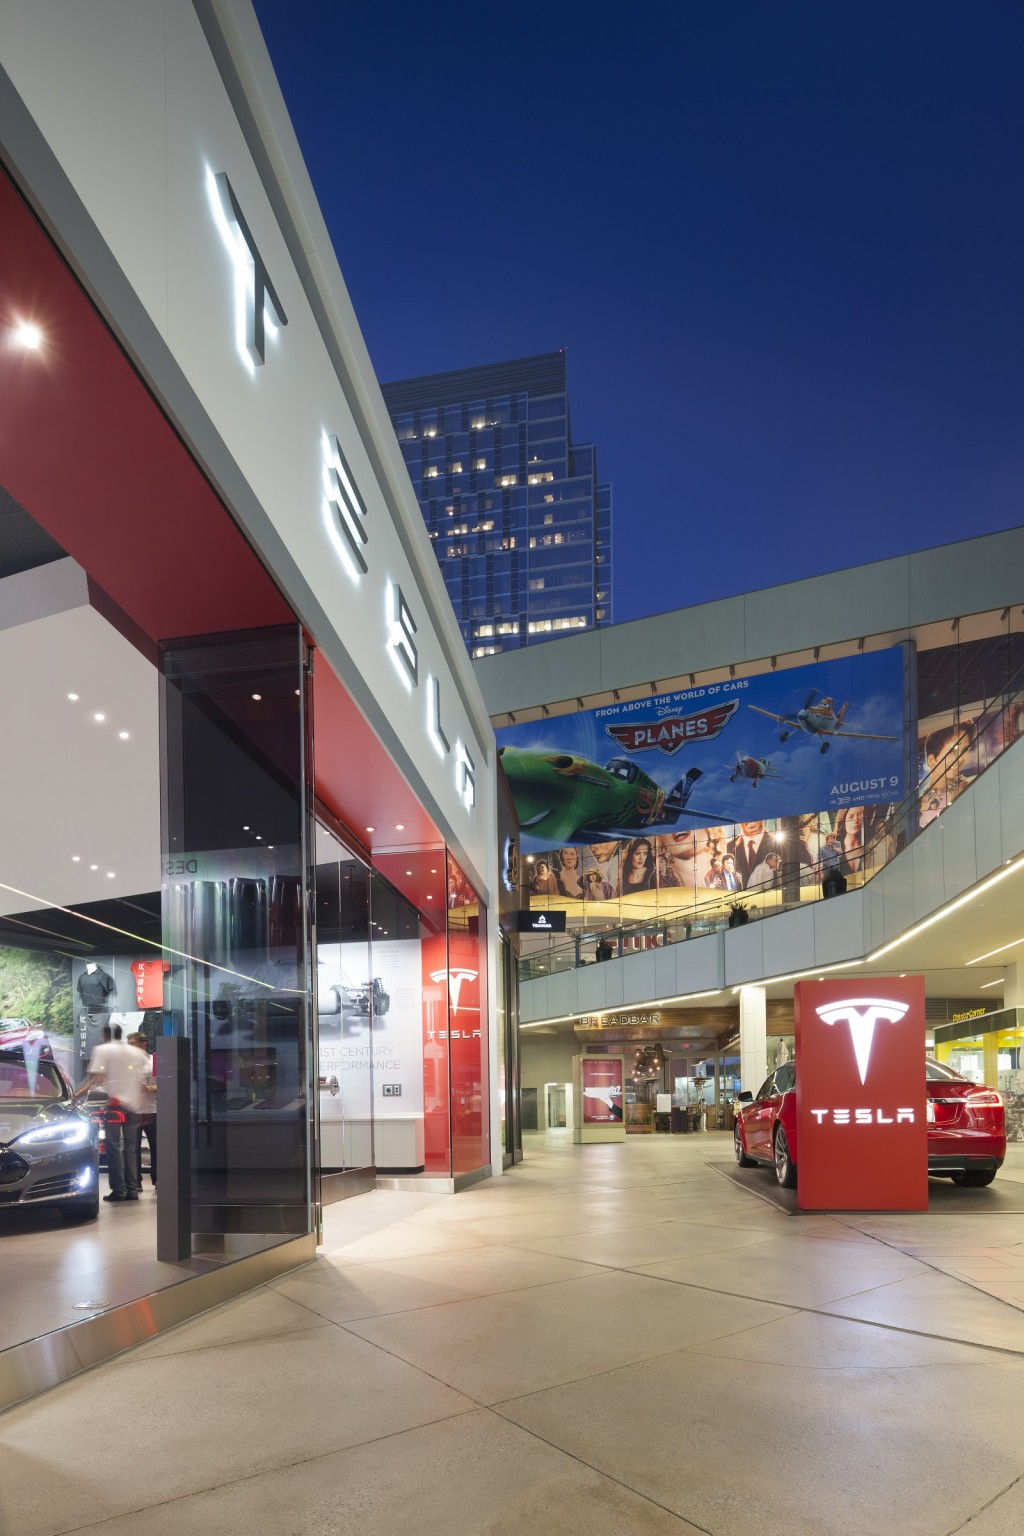 Tesla Begins Sales & Supercharging Blitz; Growth In Europe & Asia To Outpace North America By 2015